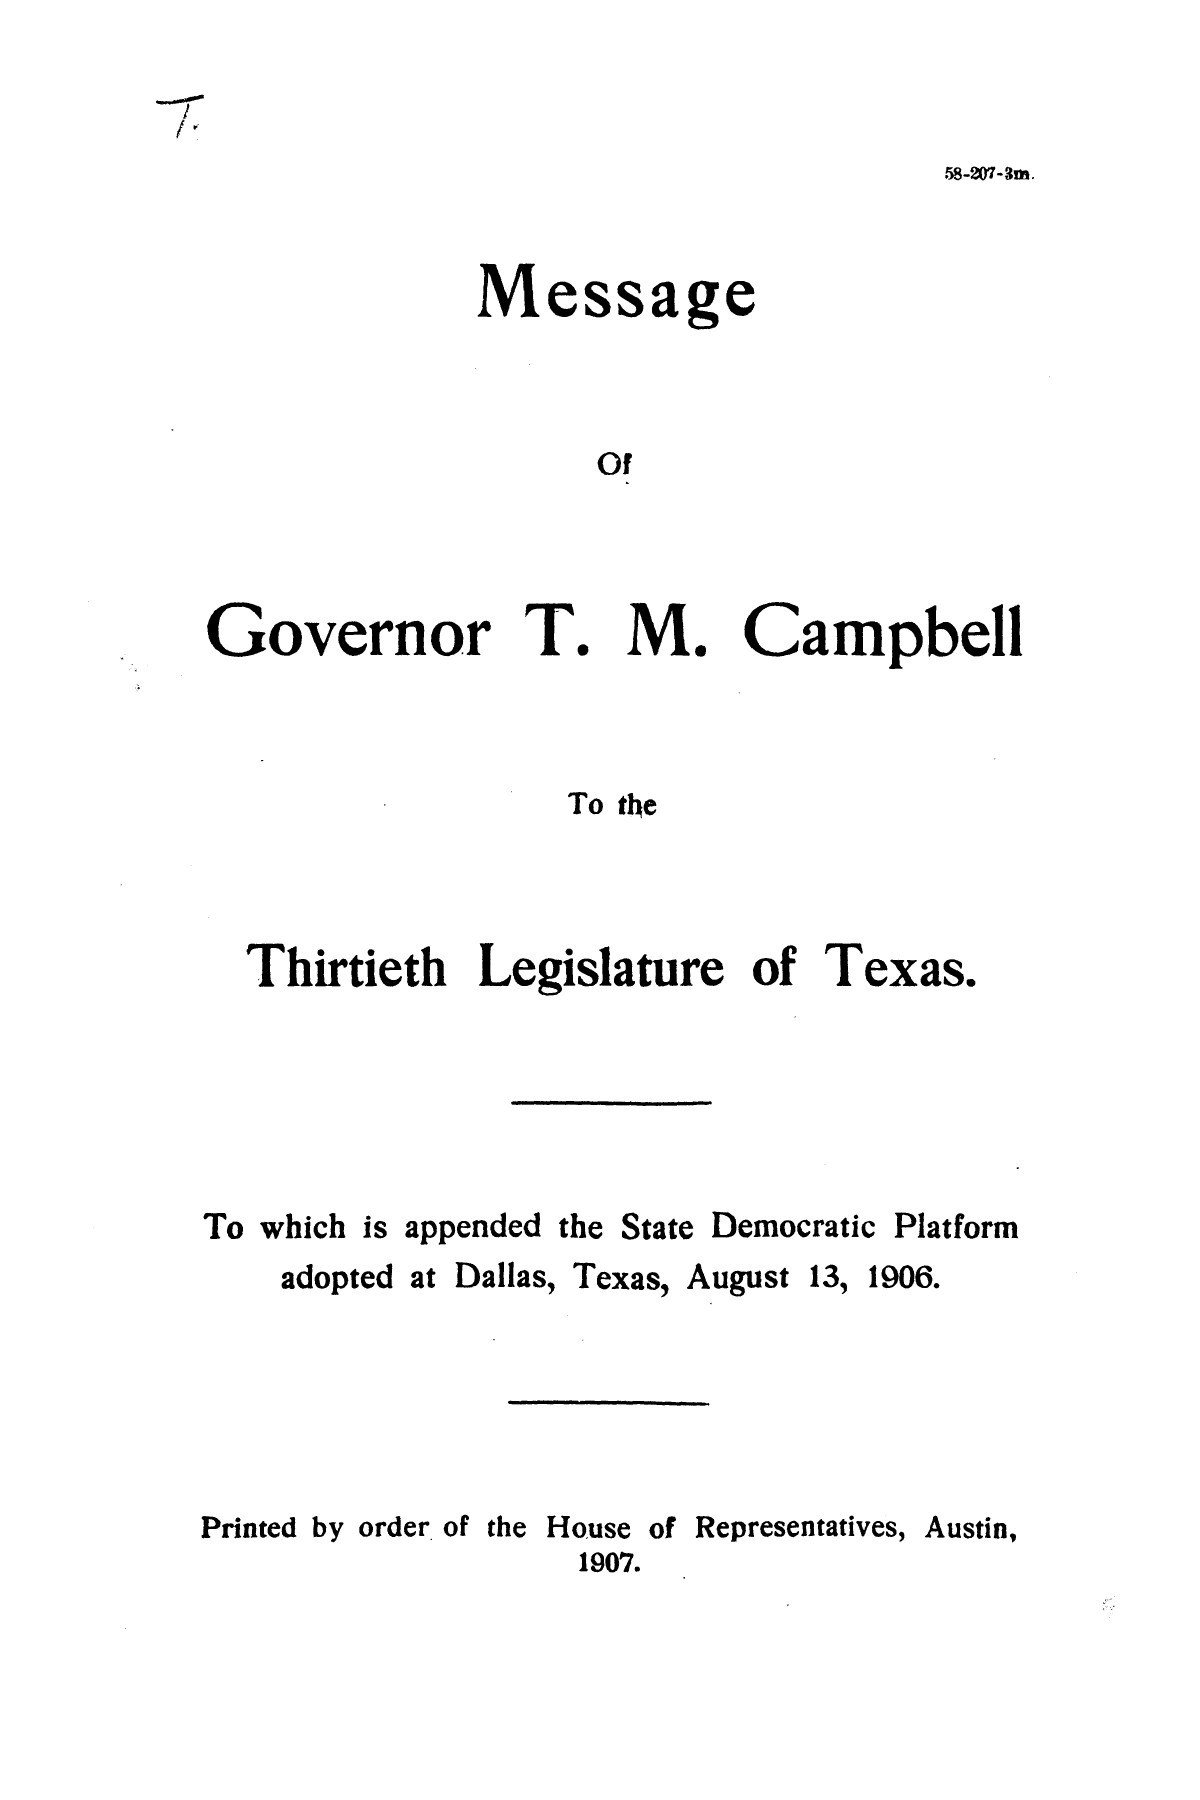 Message of Governor T.M. Campbell to the thirtieth legislature of Texas, to which is appended the State Democratic Platform adopted at Dallas, Texas, August 13, 1906.                                                                                                      [Sequence #]: 1 of 27